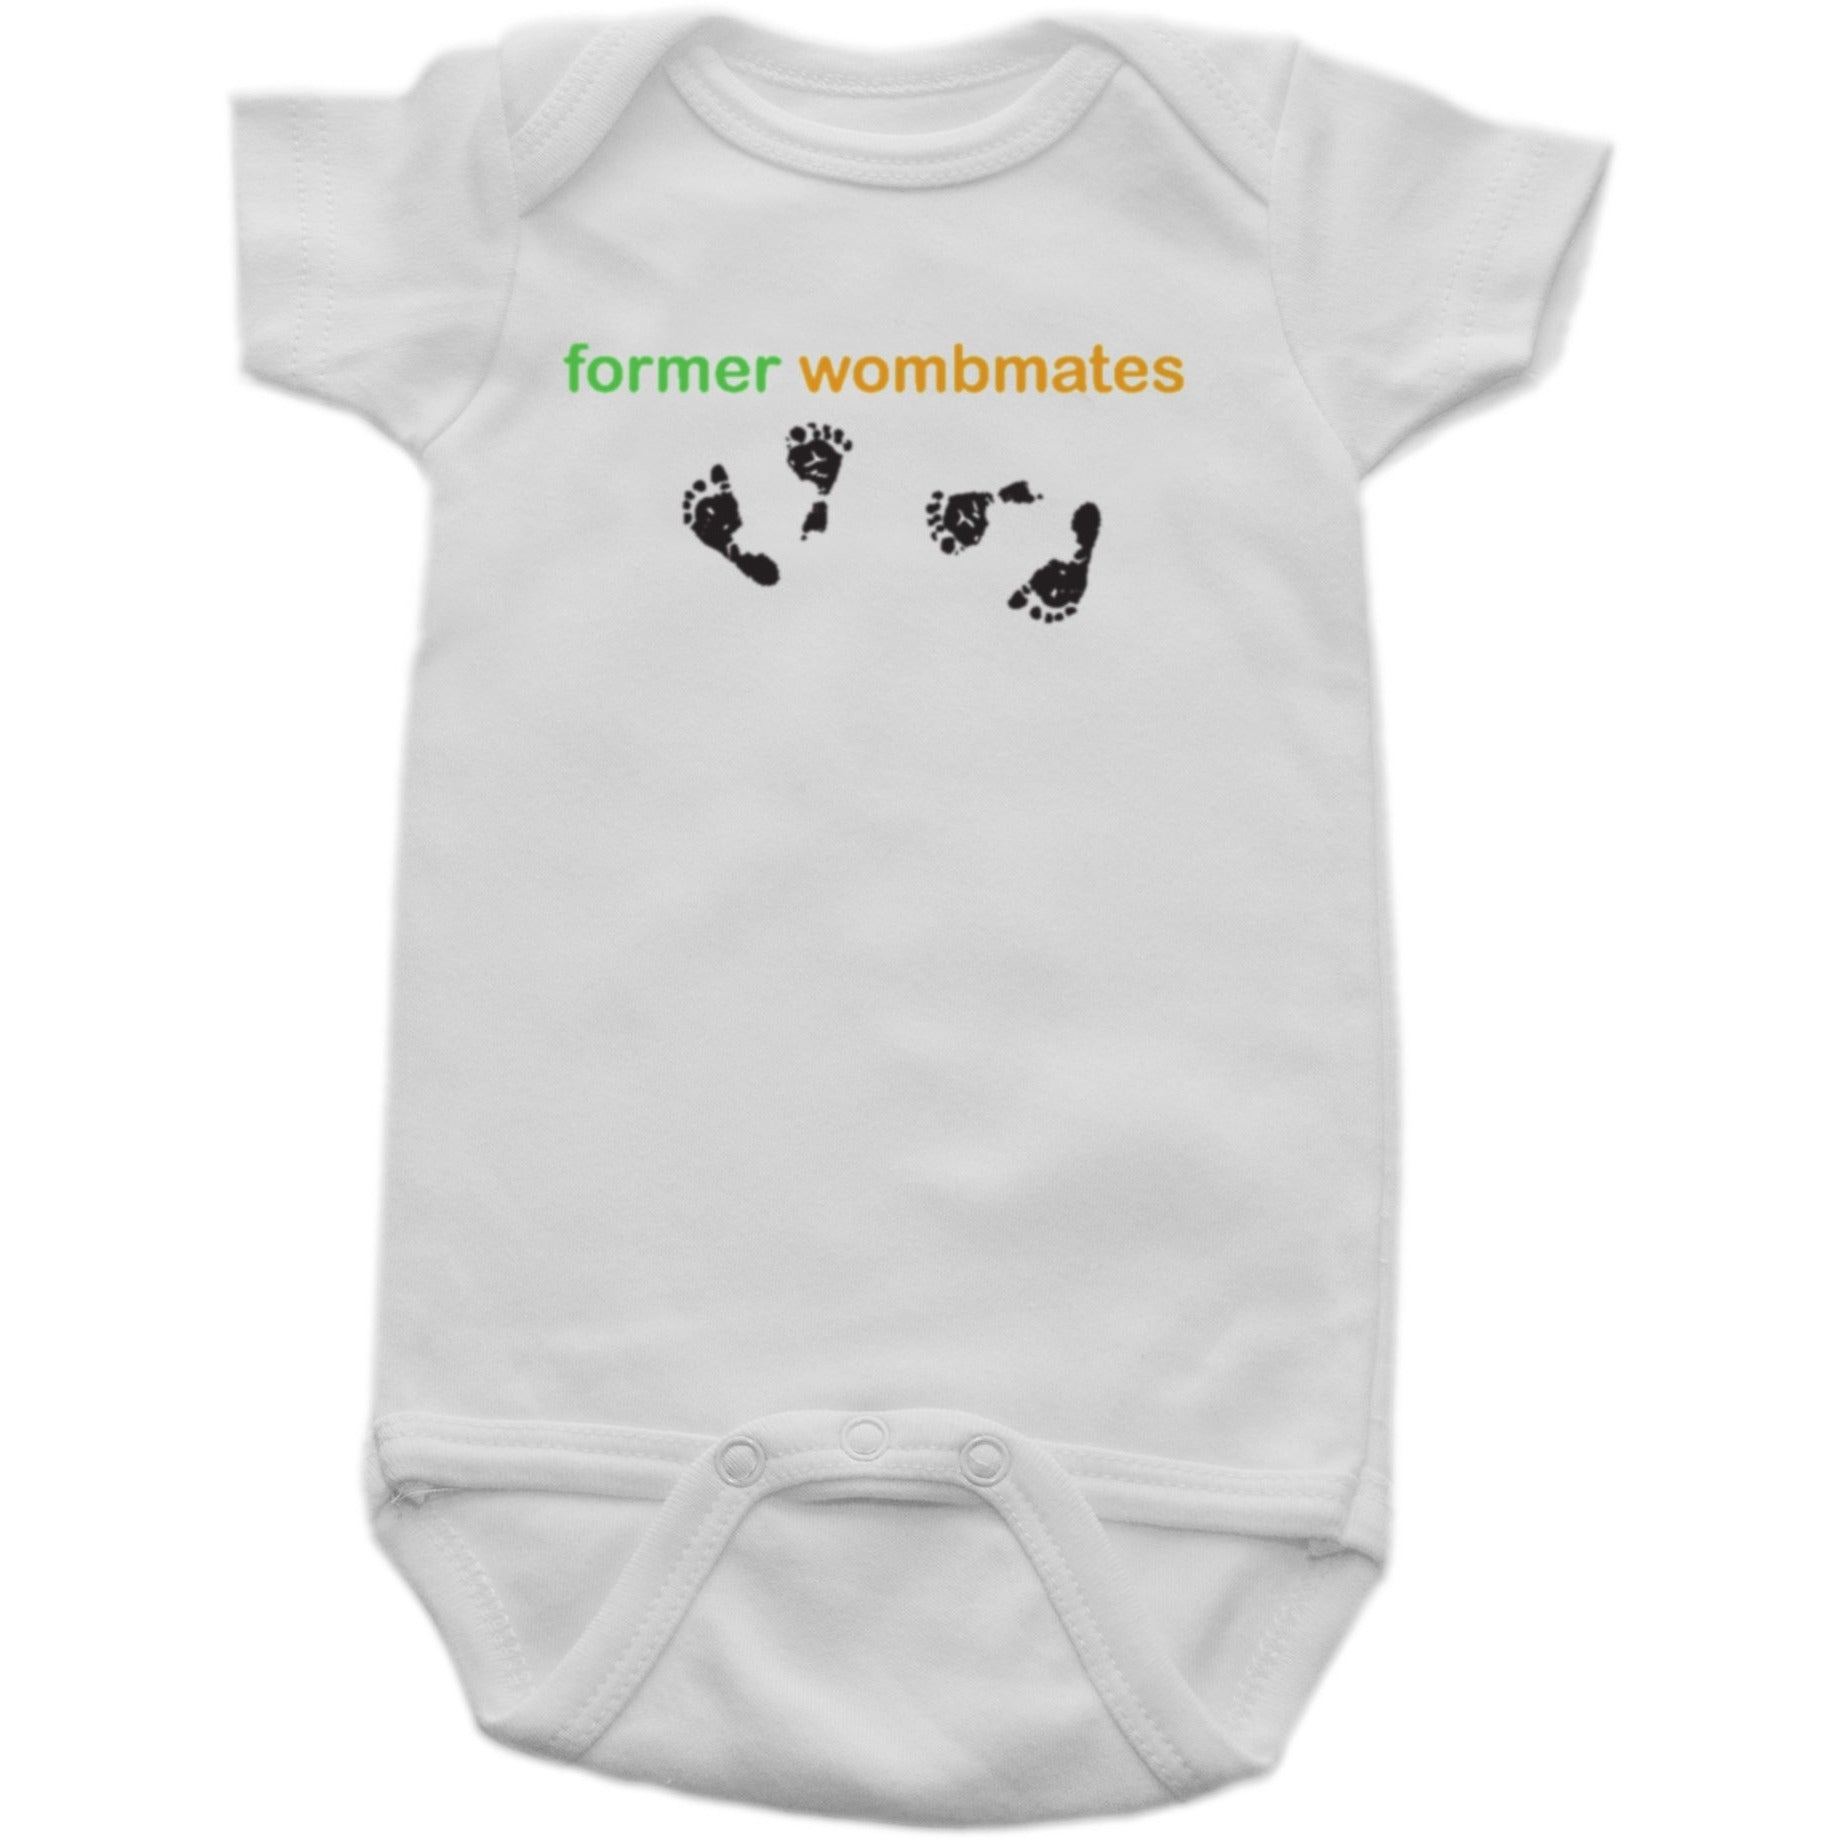 Former Wombmates Onsies Set